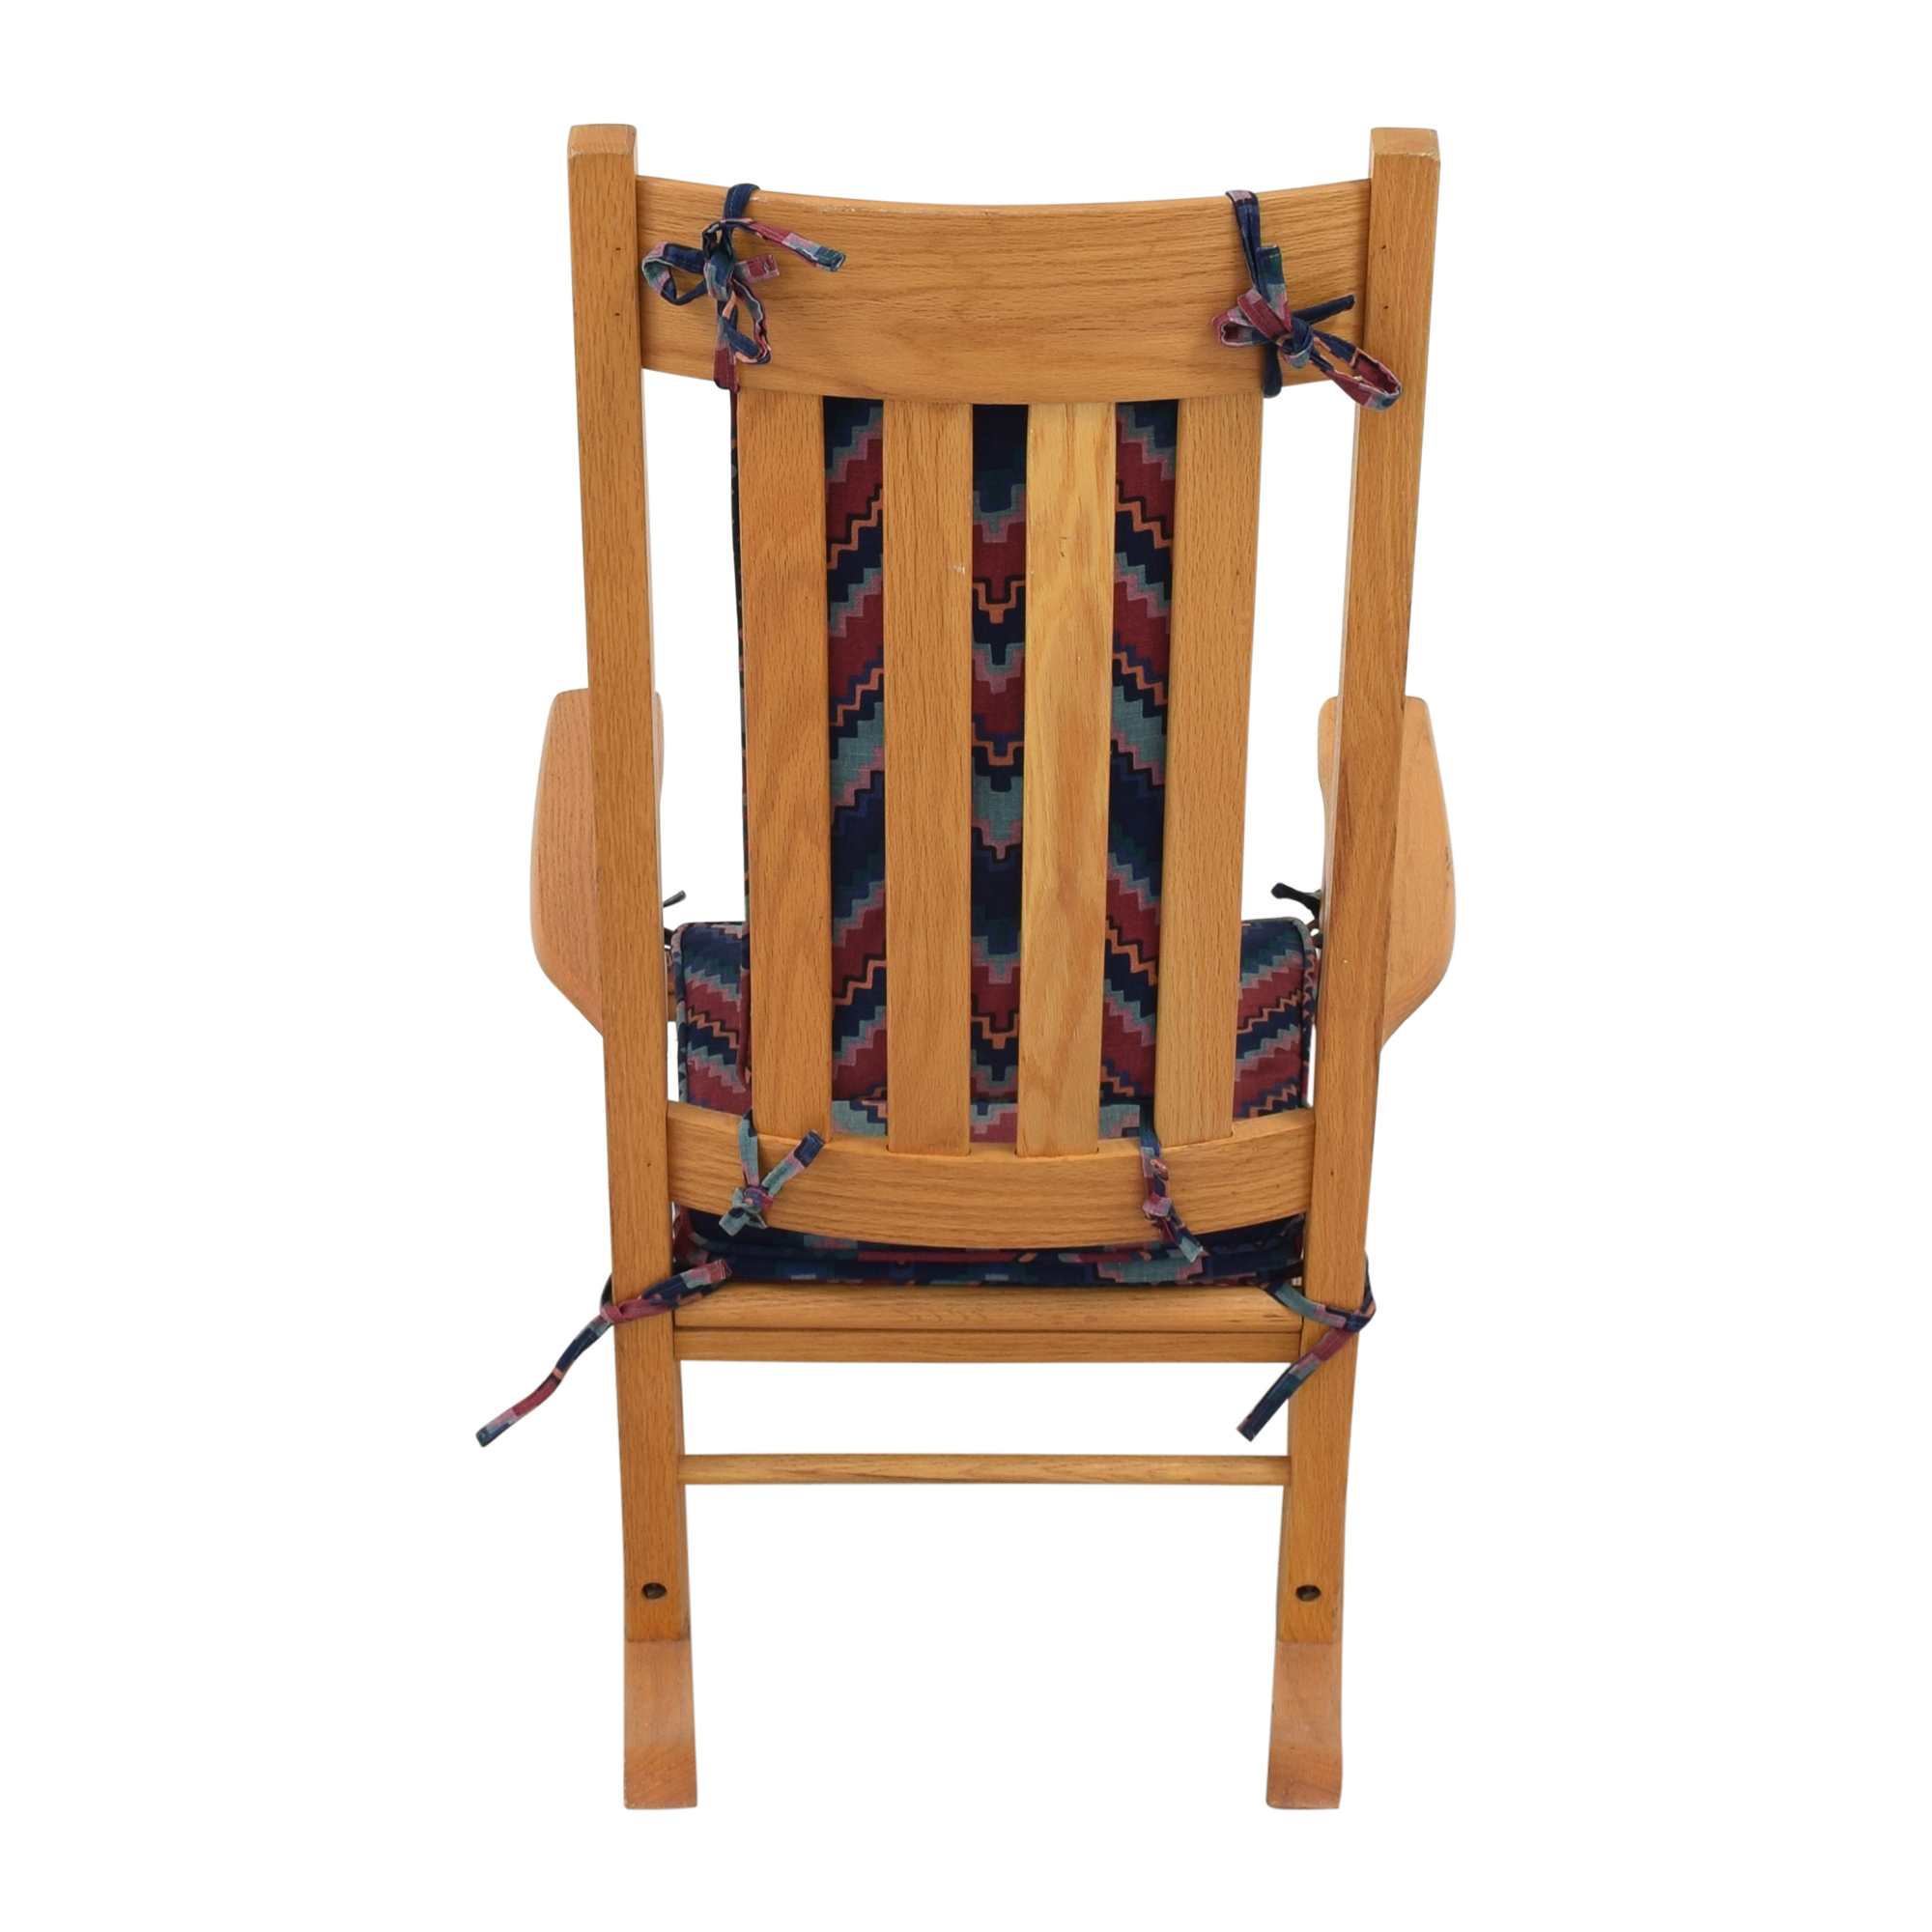 Rocking Chair with Fabric Cushions second hand